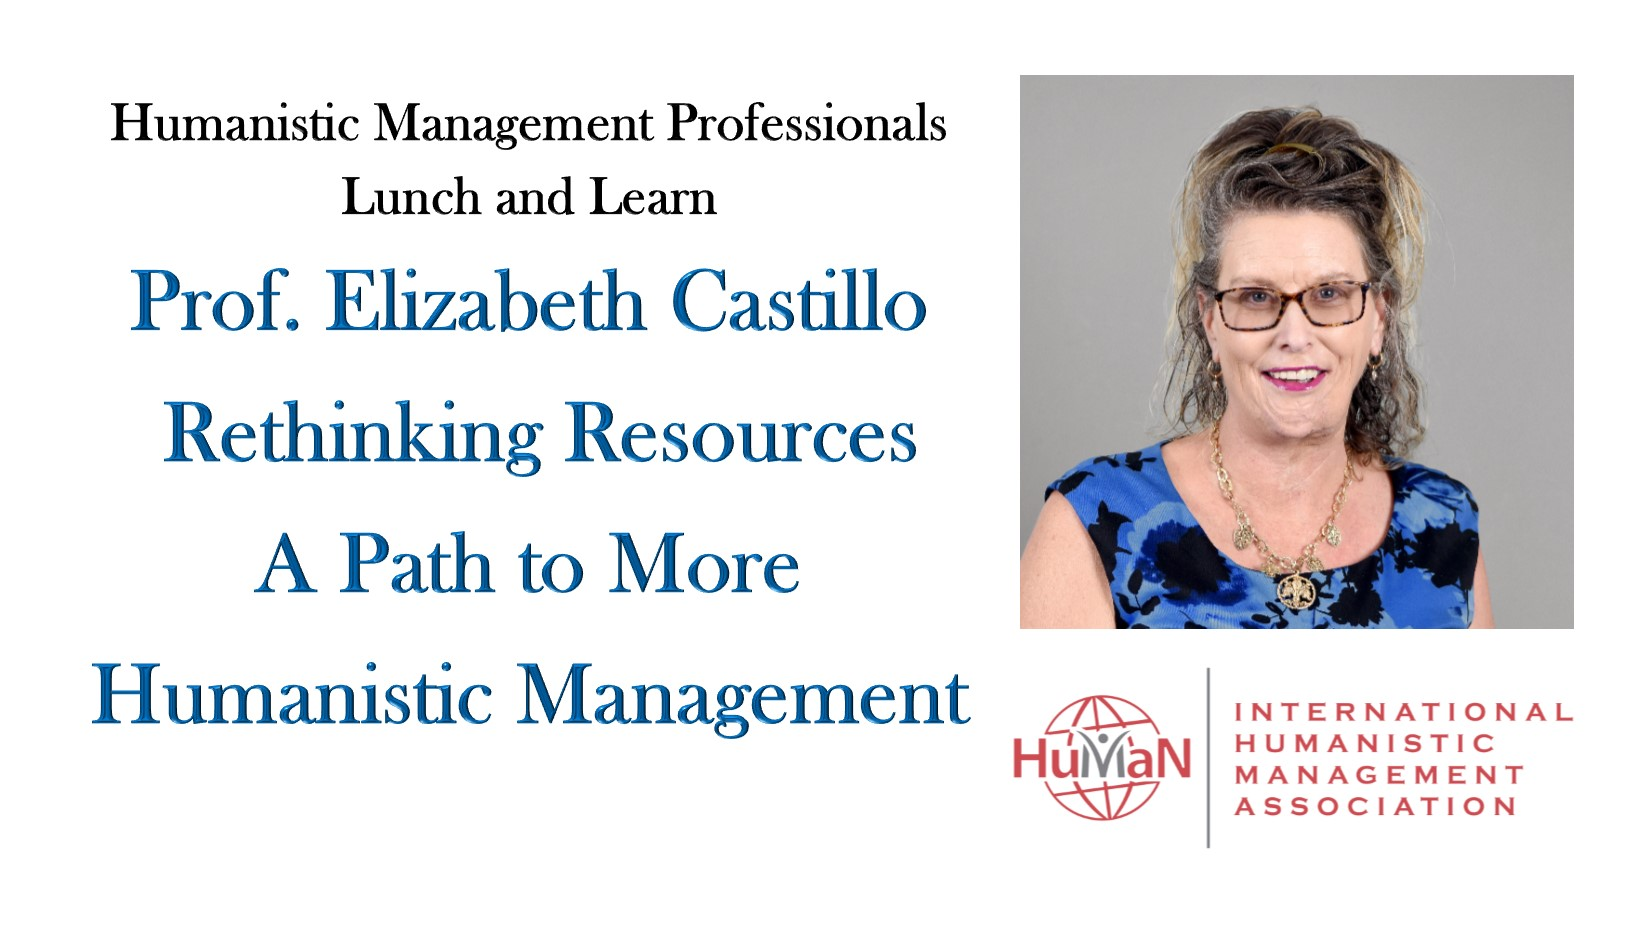 Rethinking Resources–A Path to More Humanistic Management